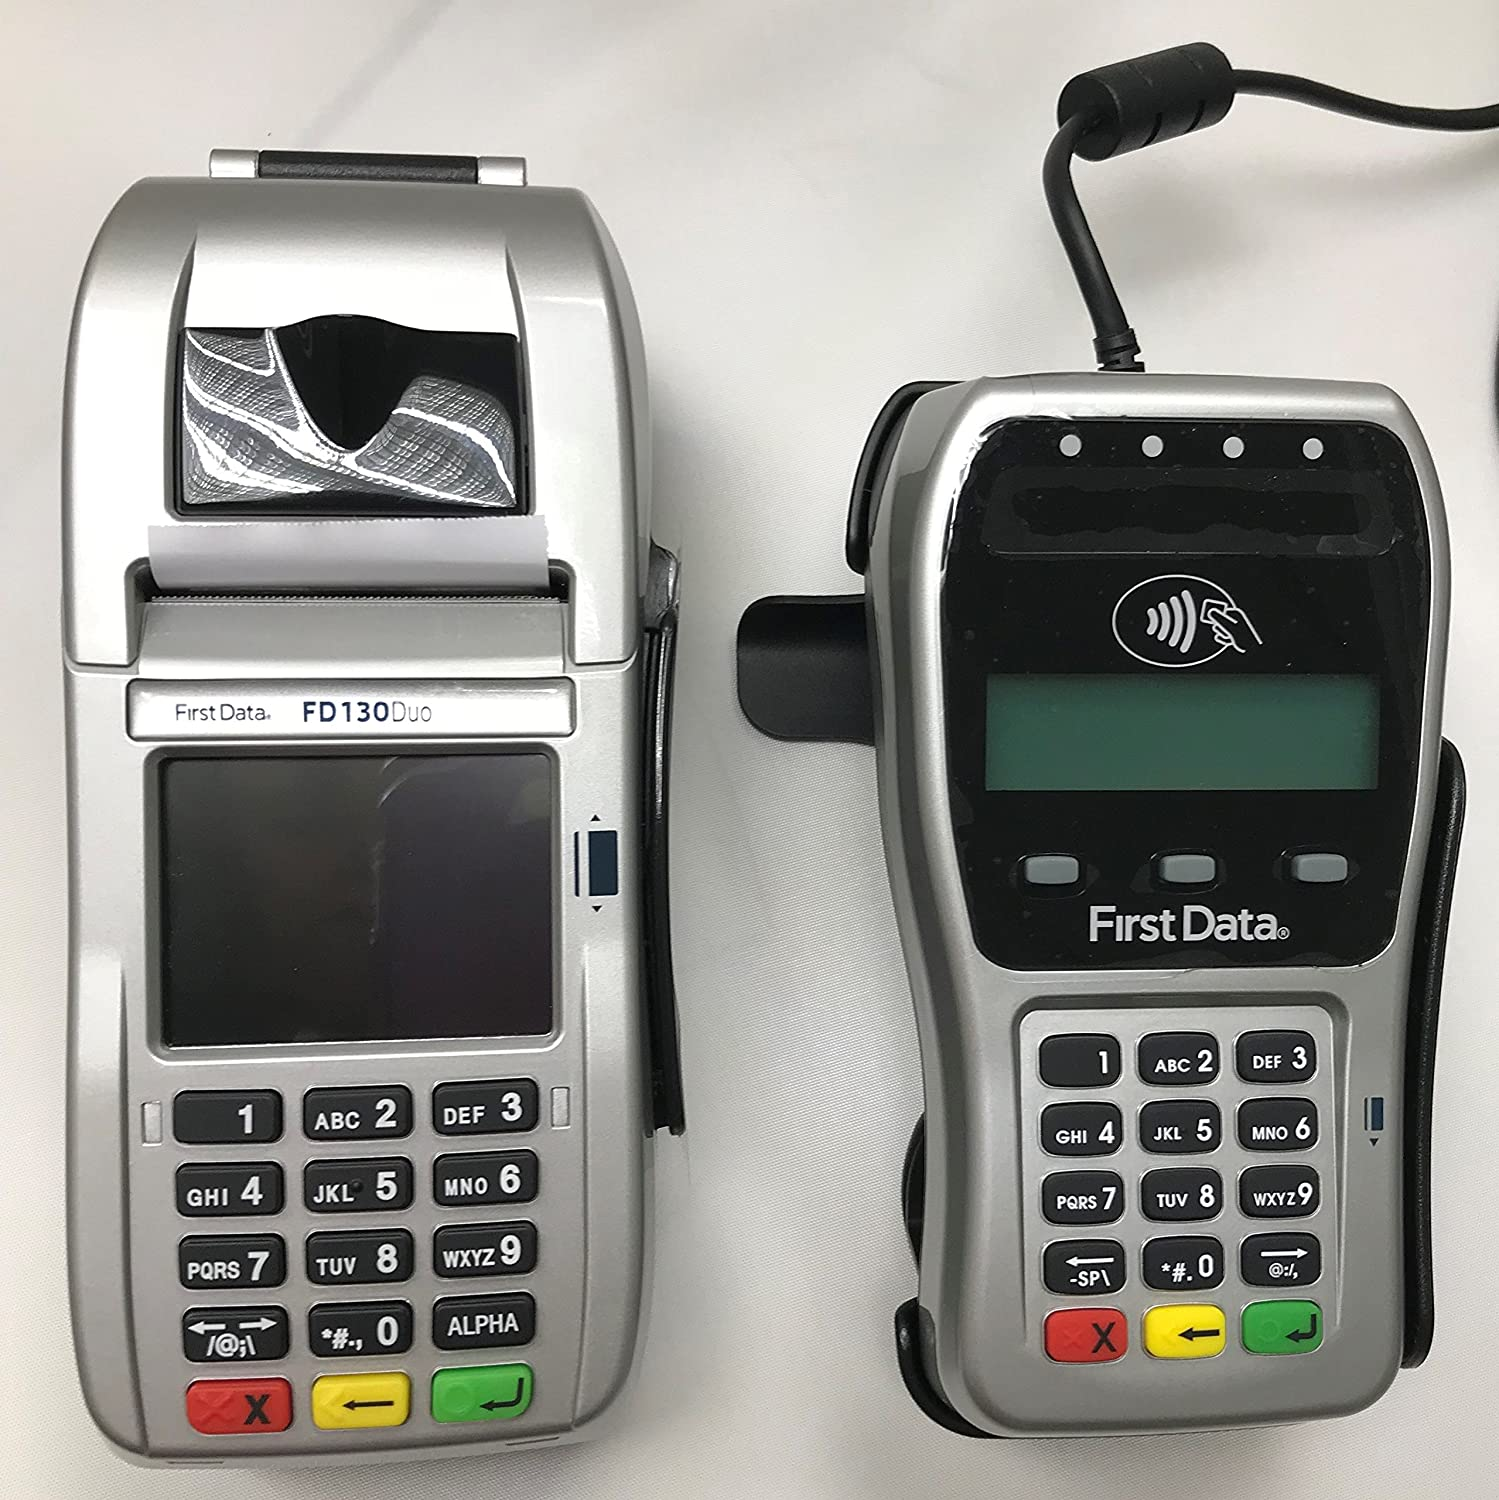 Credit Card Readers   Amazon.com   Office Electronics - Point-of ...